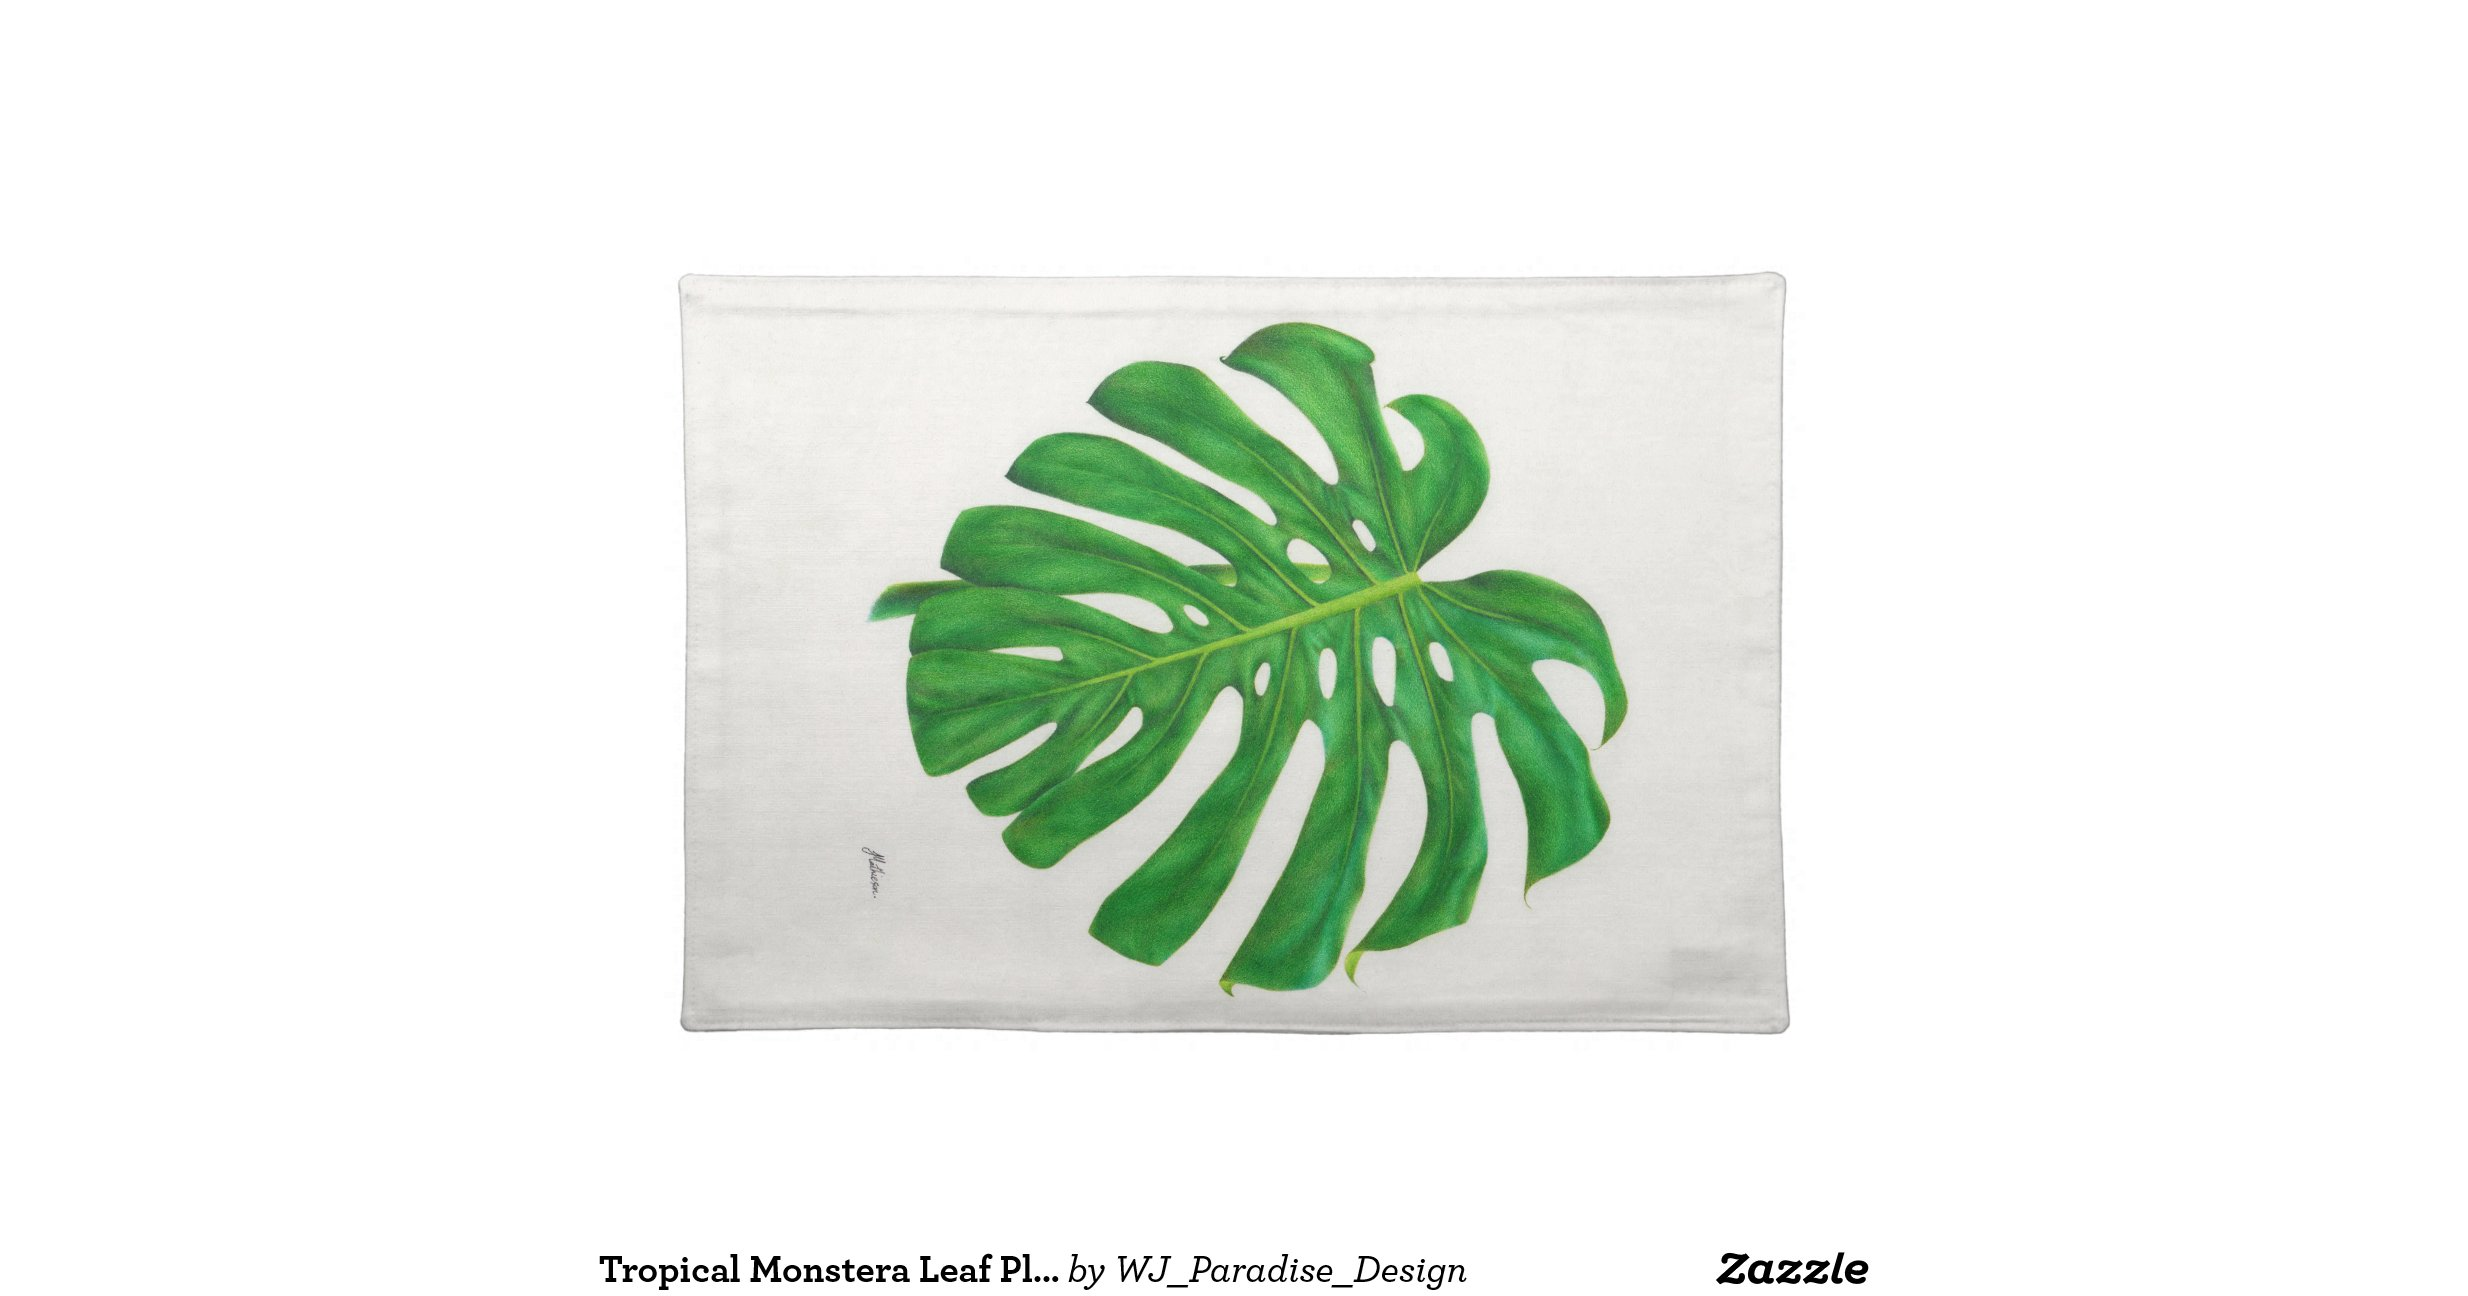 Tropicalmonsteraleafplacematclothplacemat